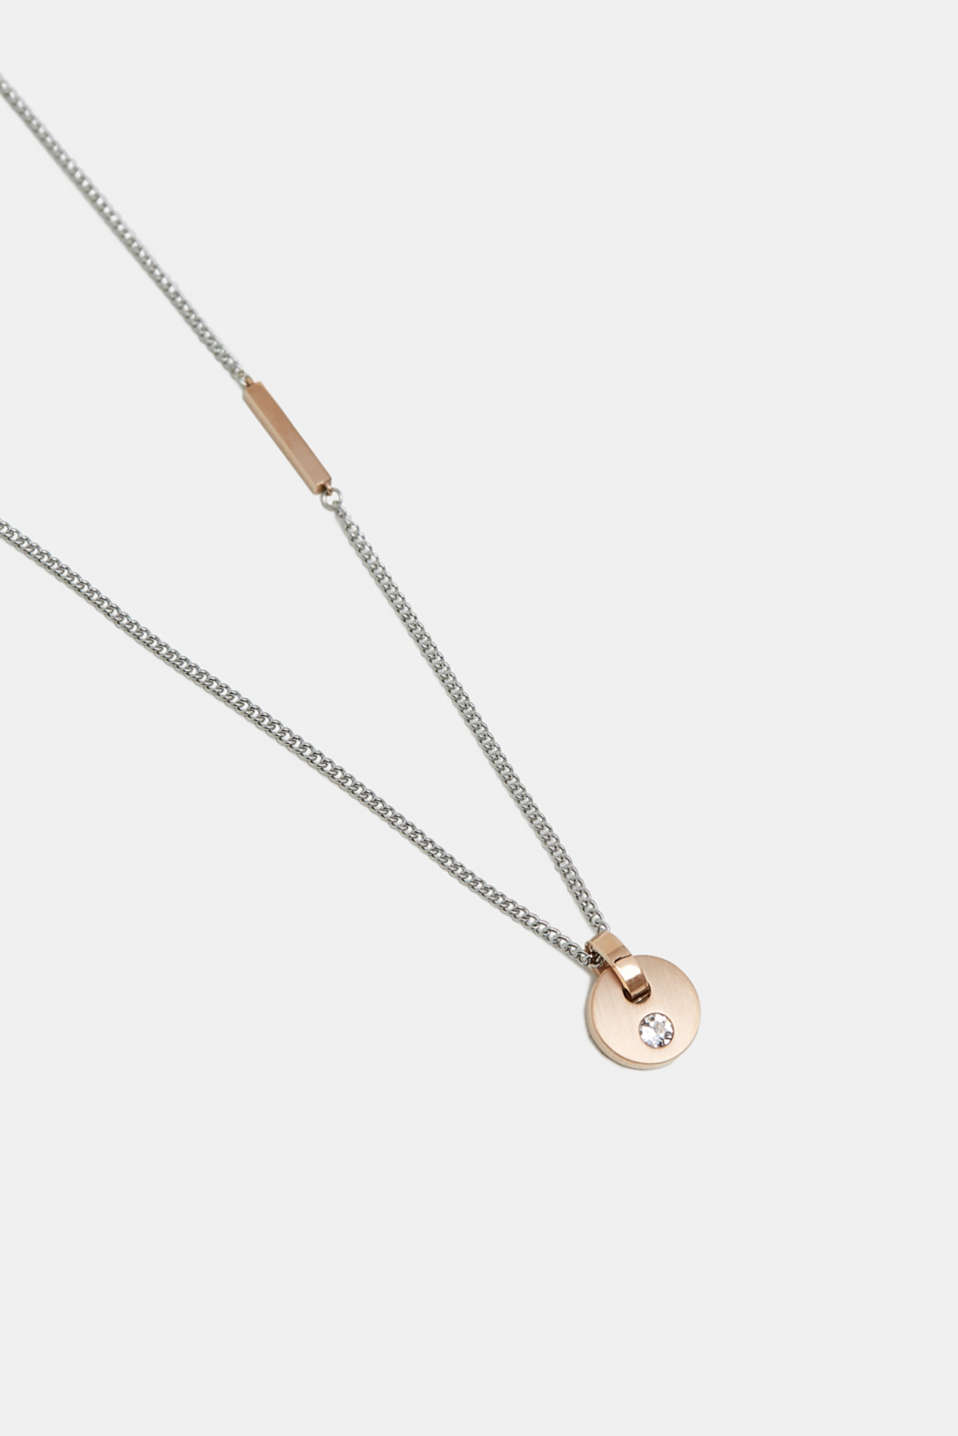 Necklace with a rose gold pendant, SILVER, detail image number 1